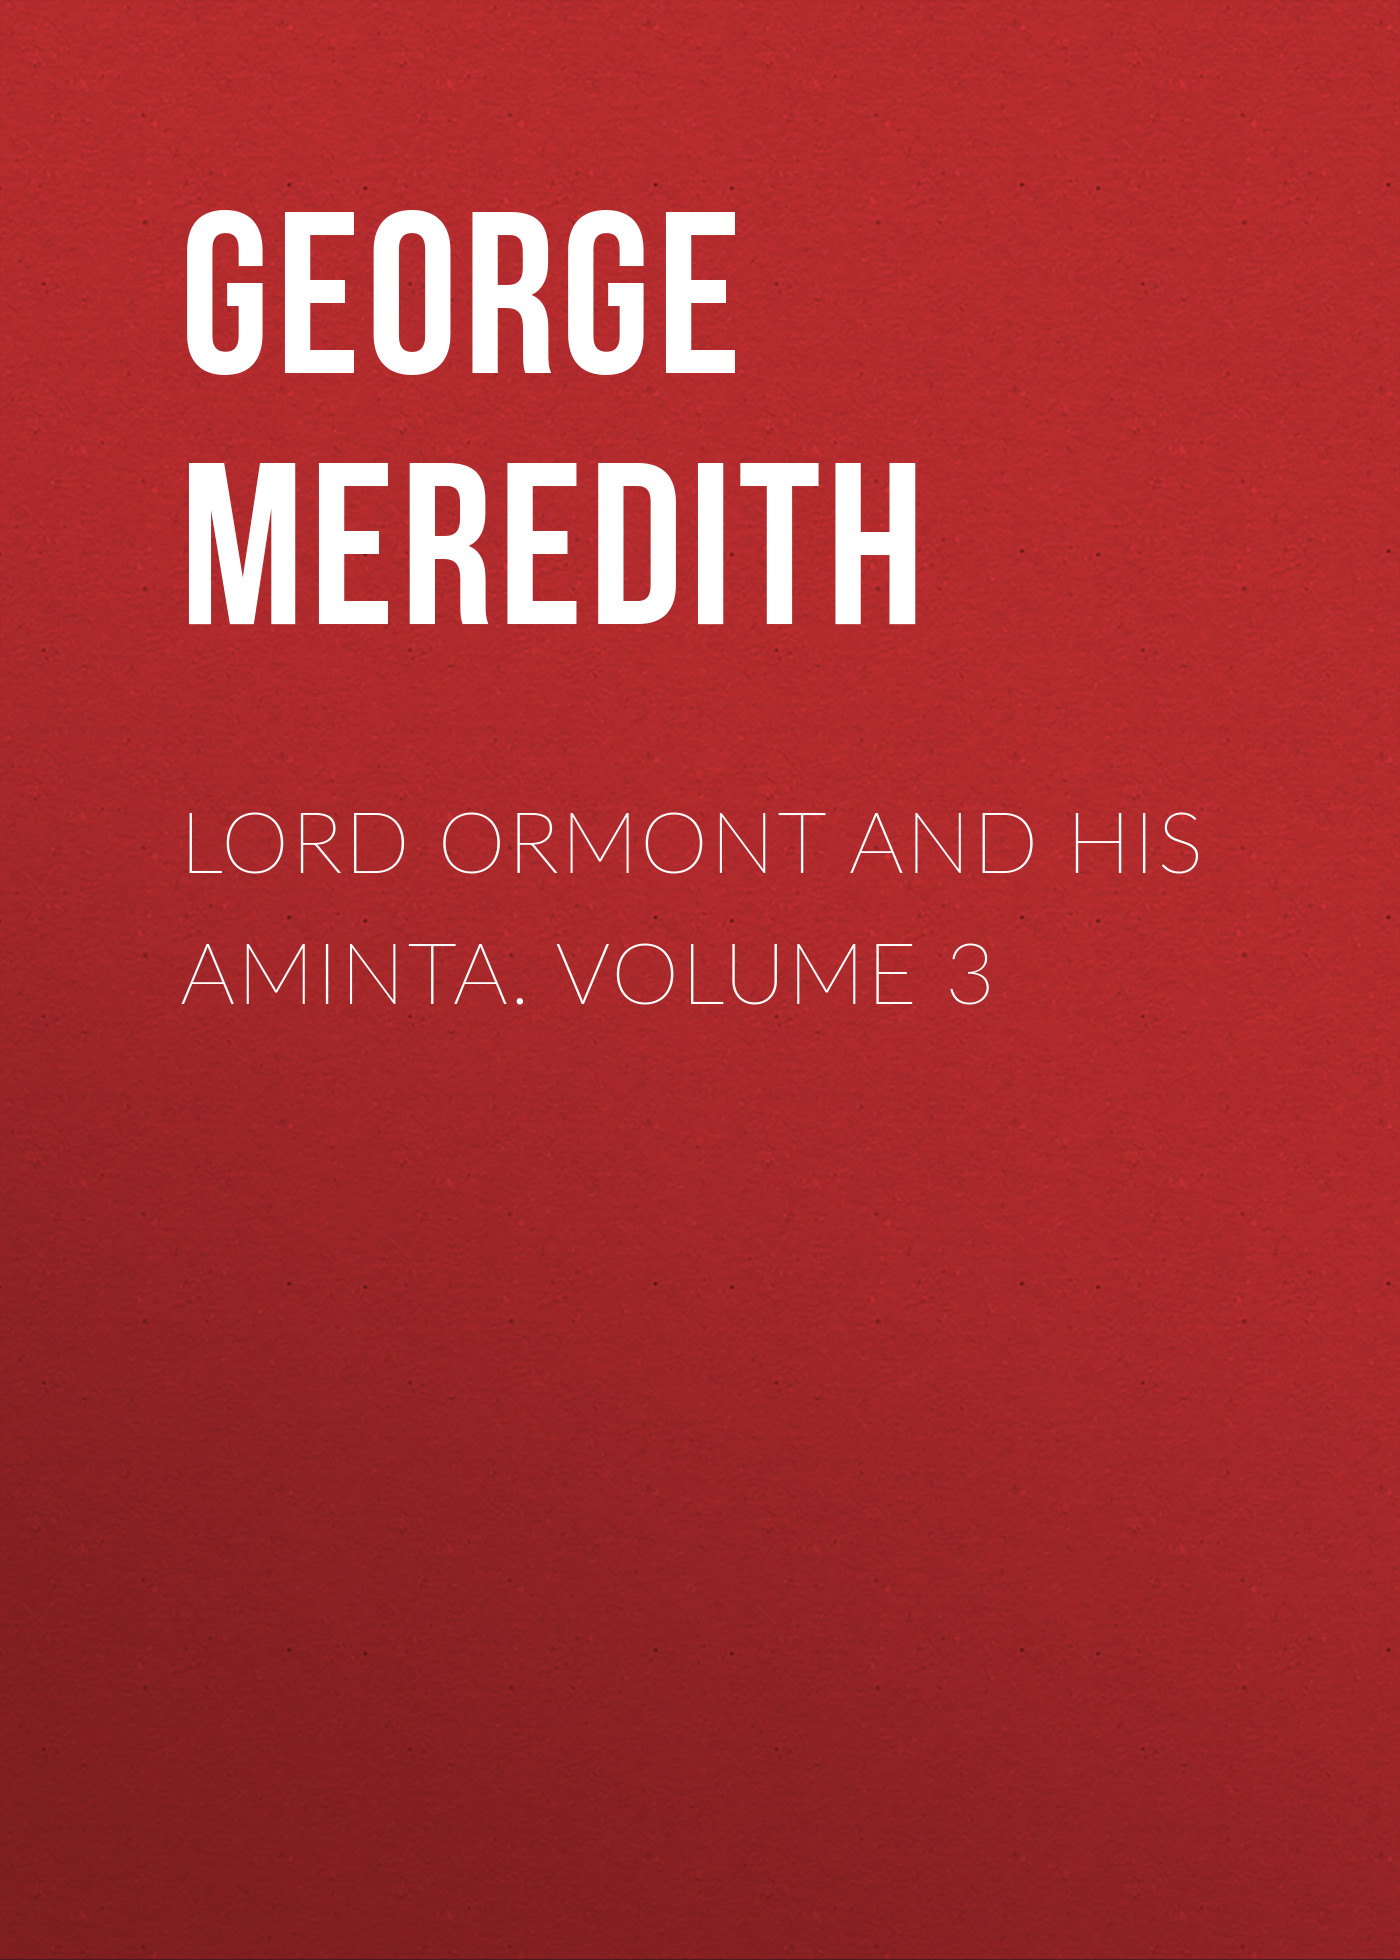 George Meredith Lord Ormont and His Aminta. Volume 3 george meredith lord ormont and his aminta volume 2